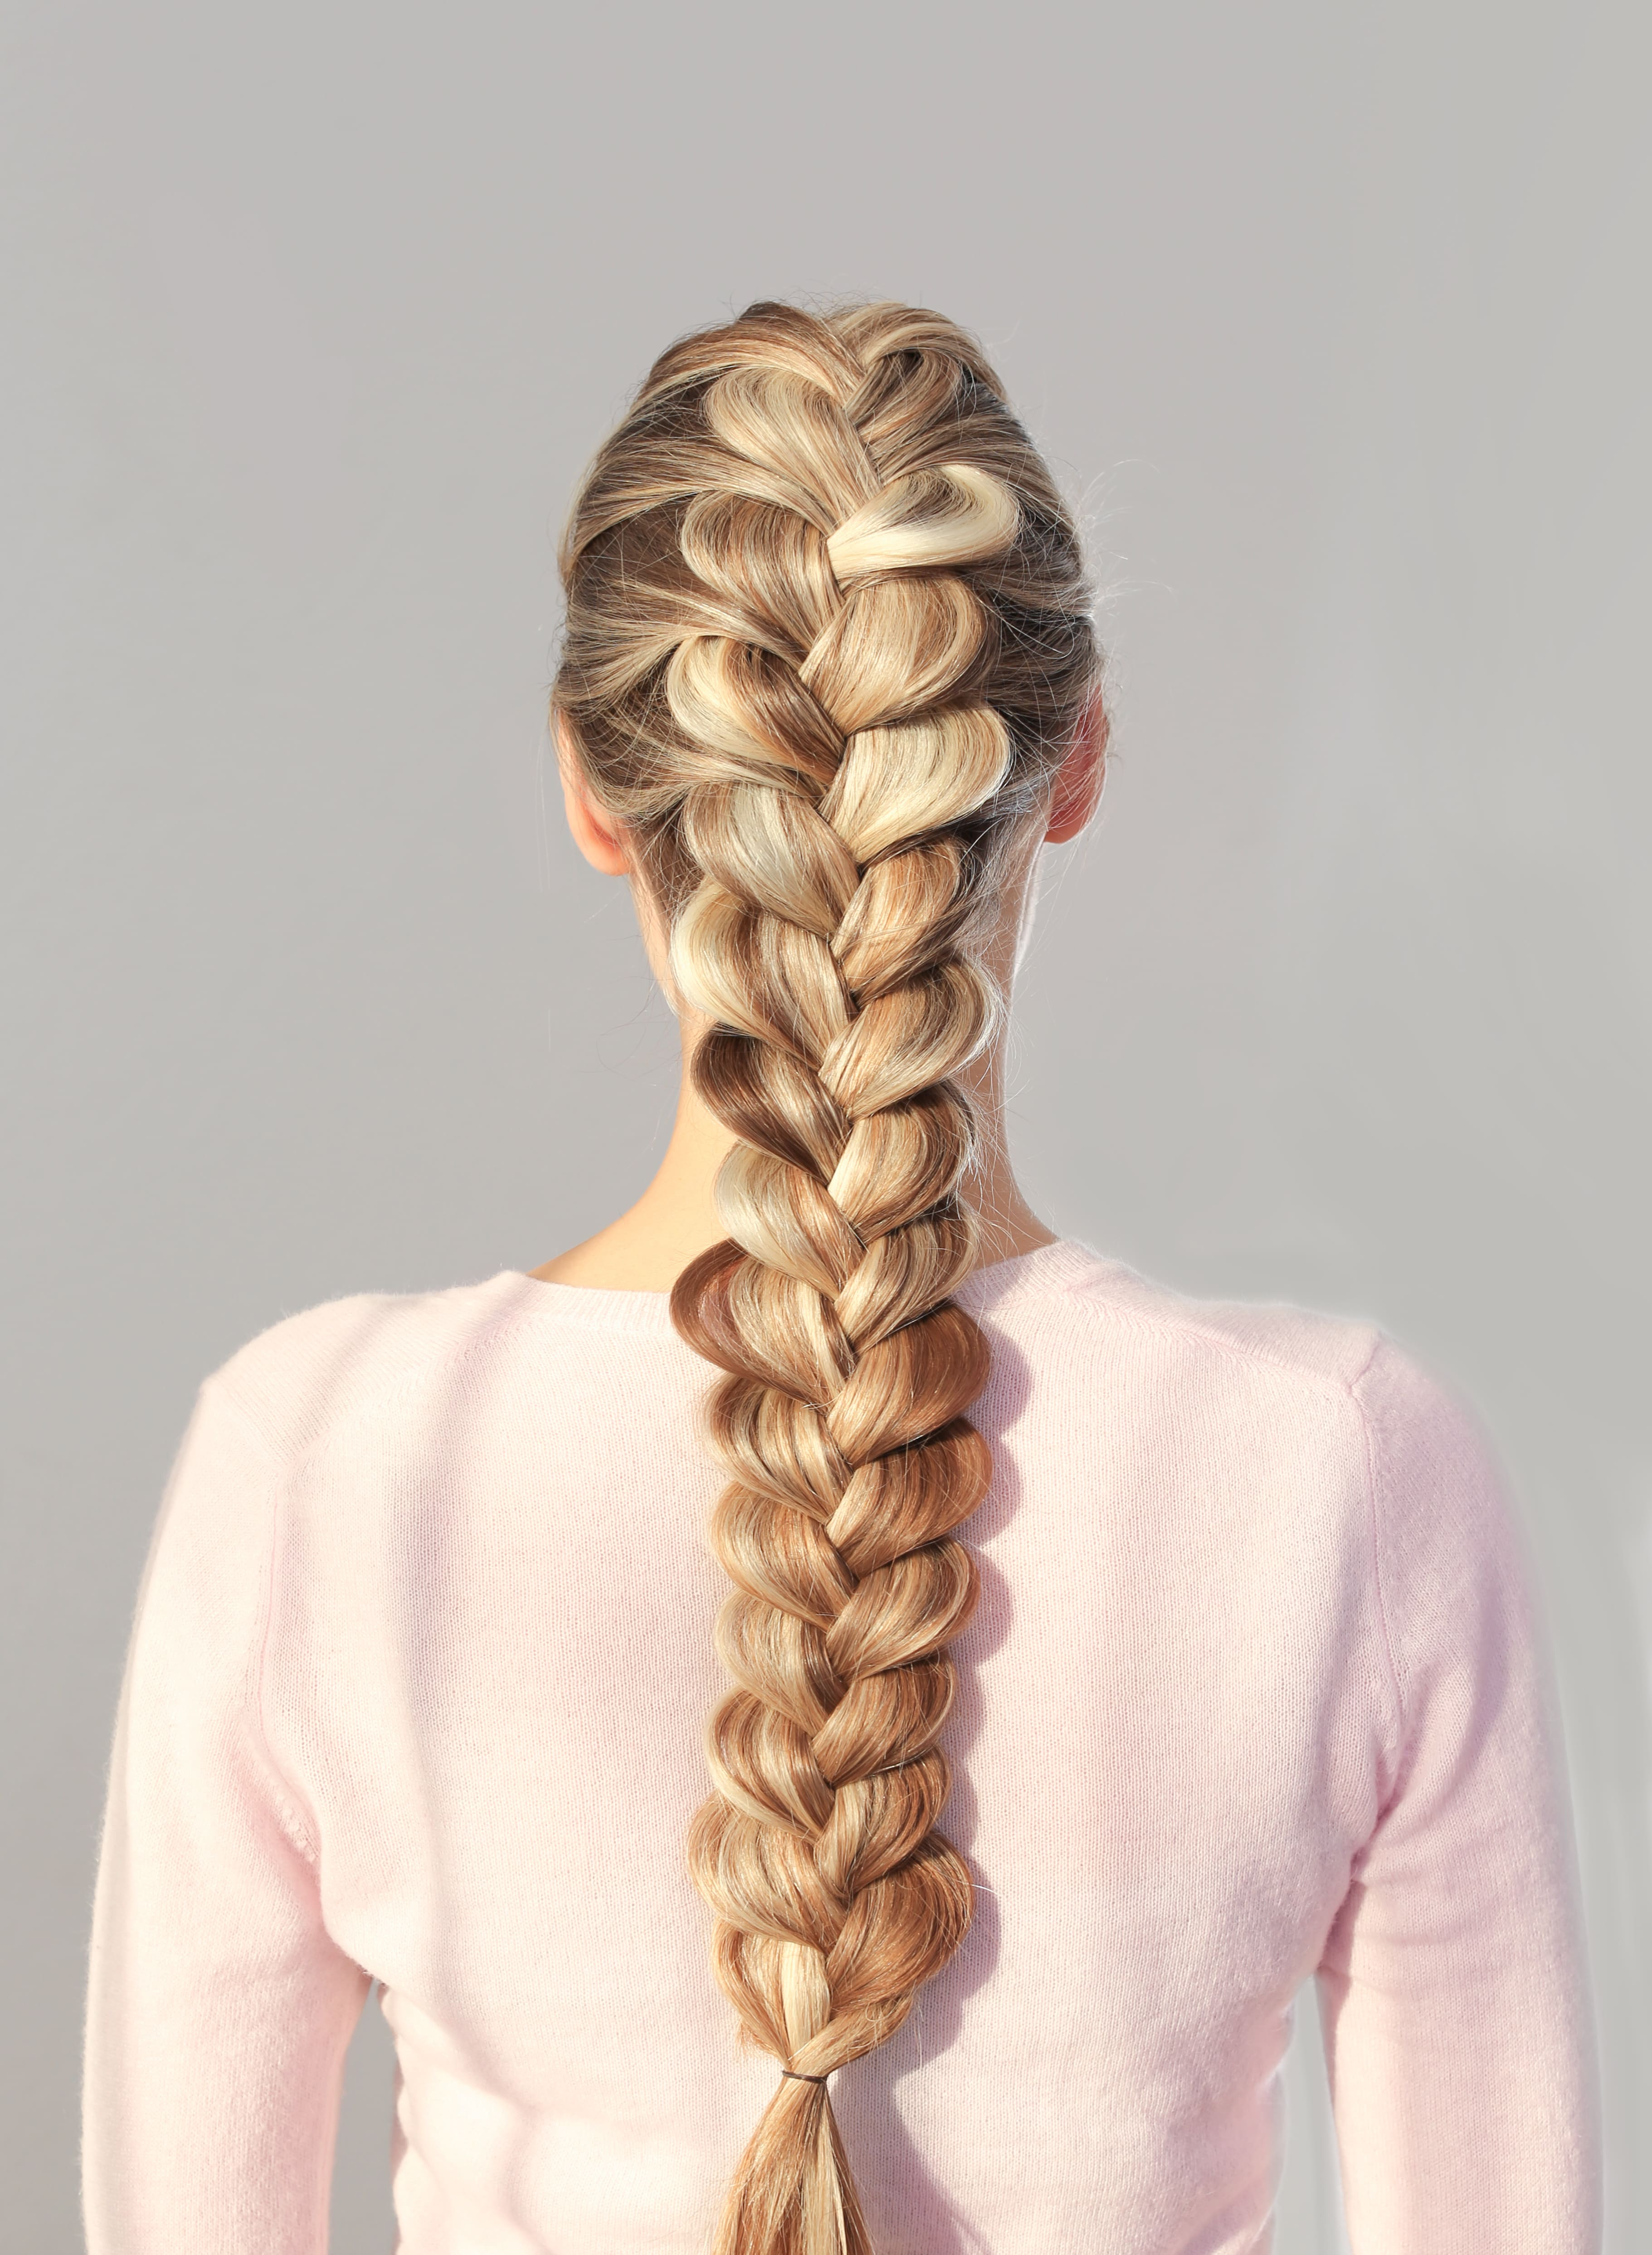 Long Hairstyles - 2